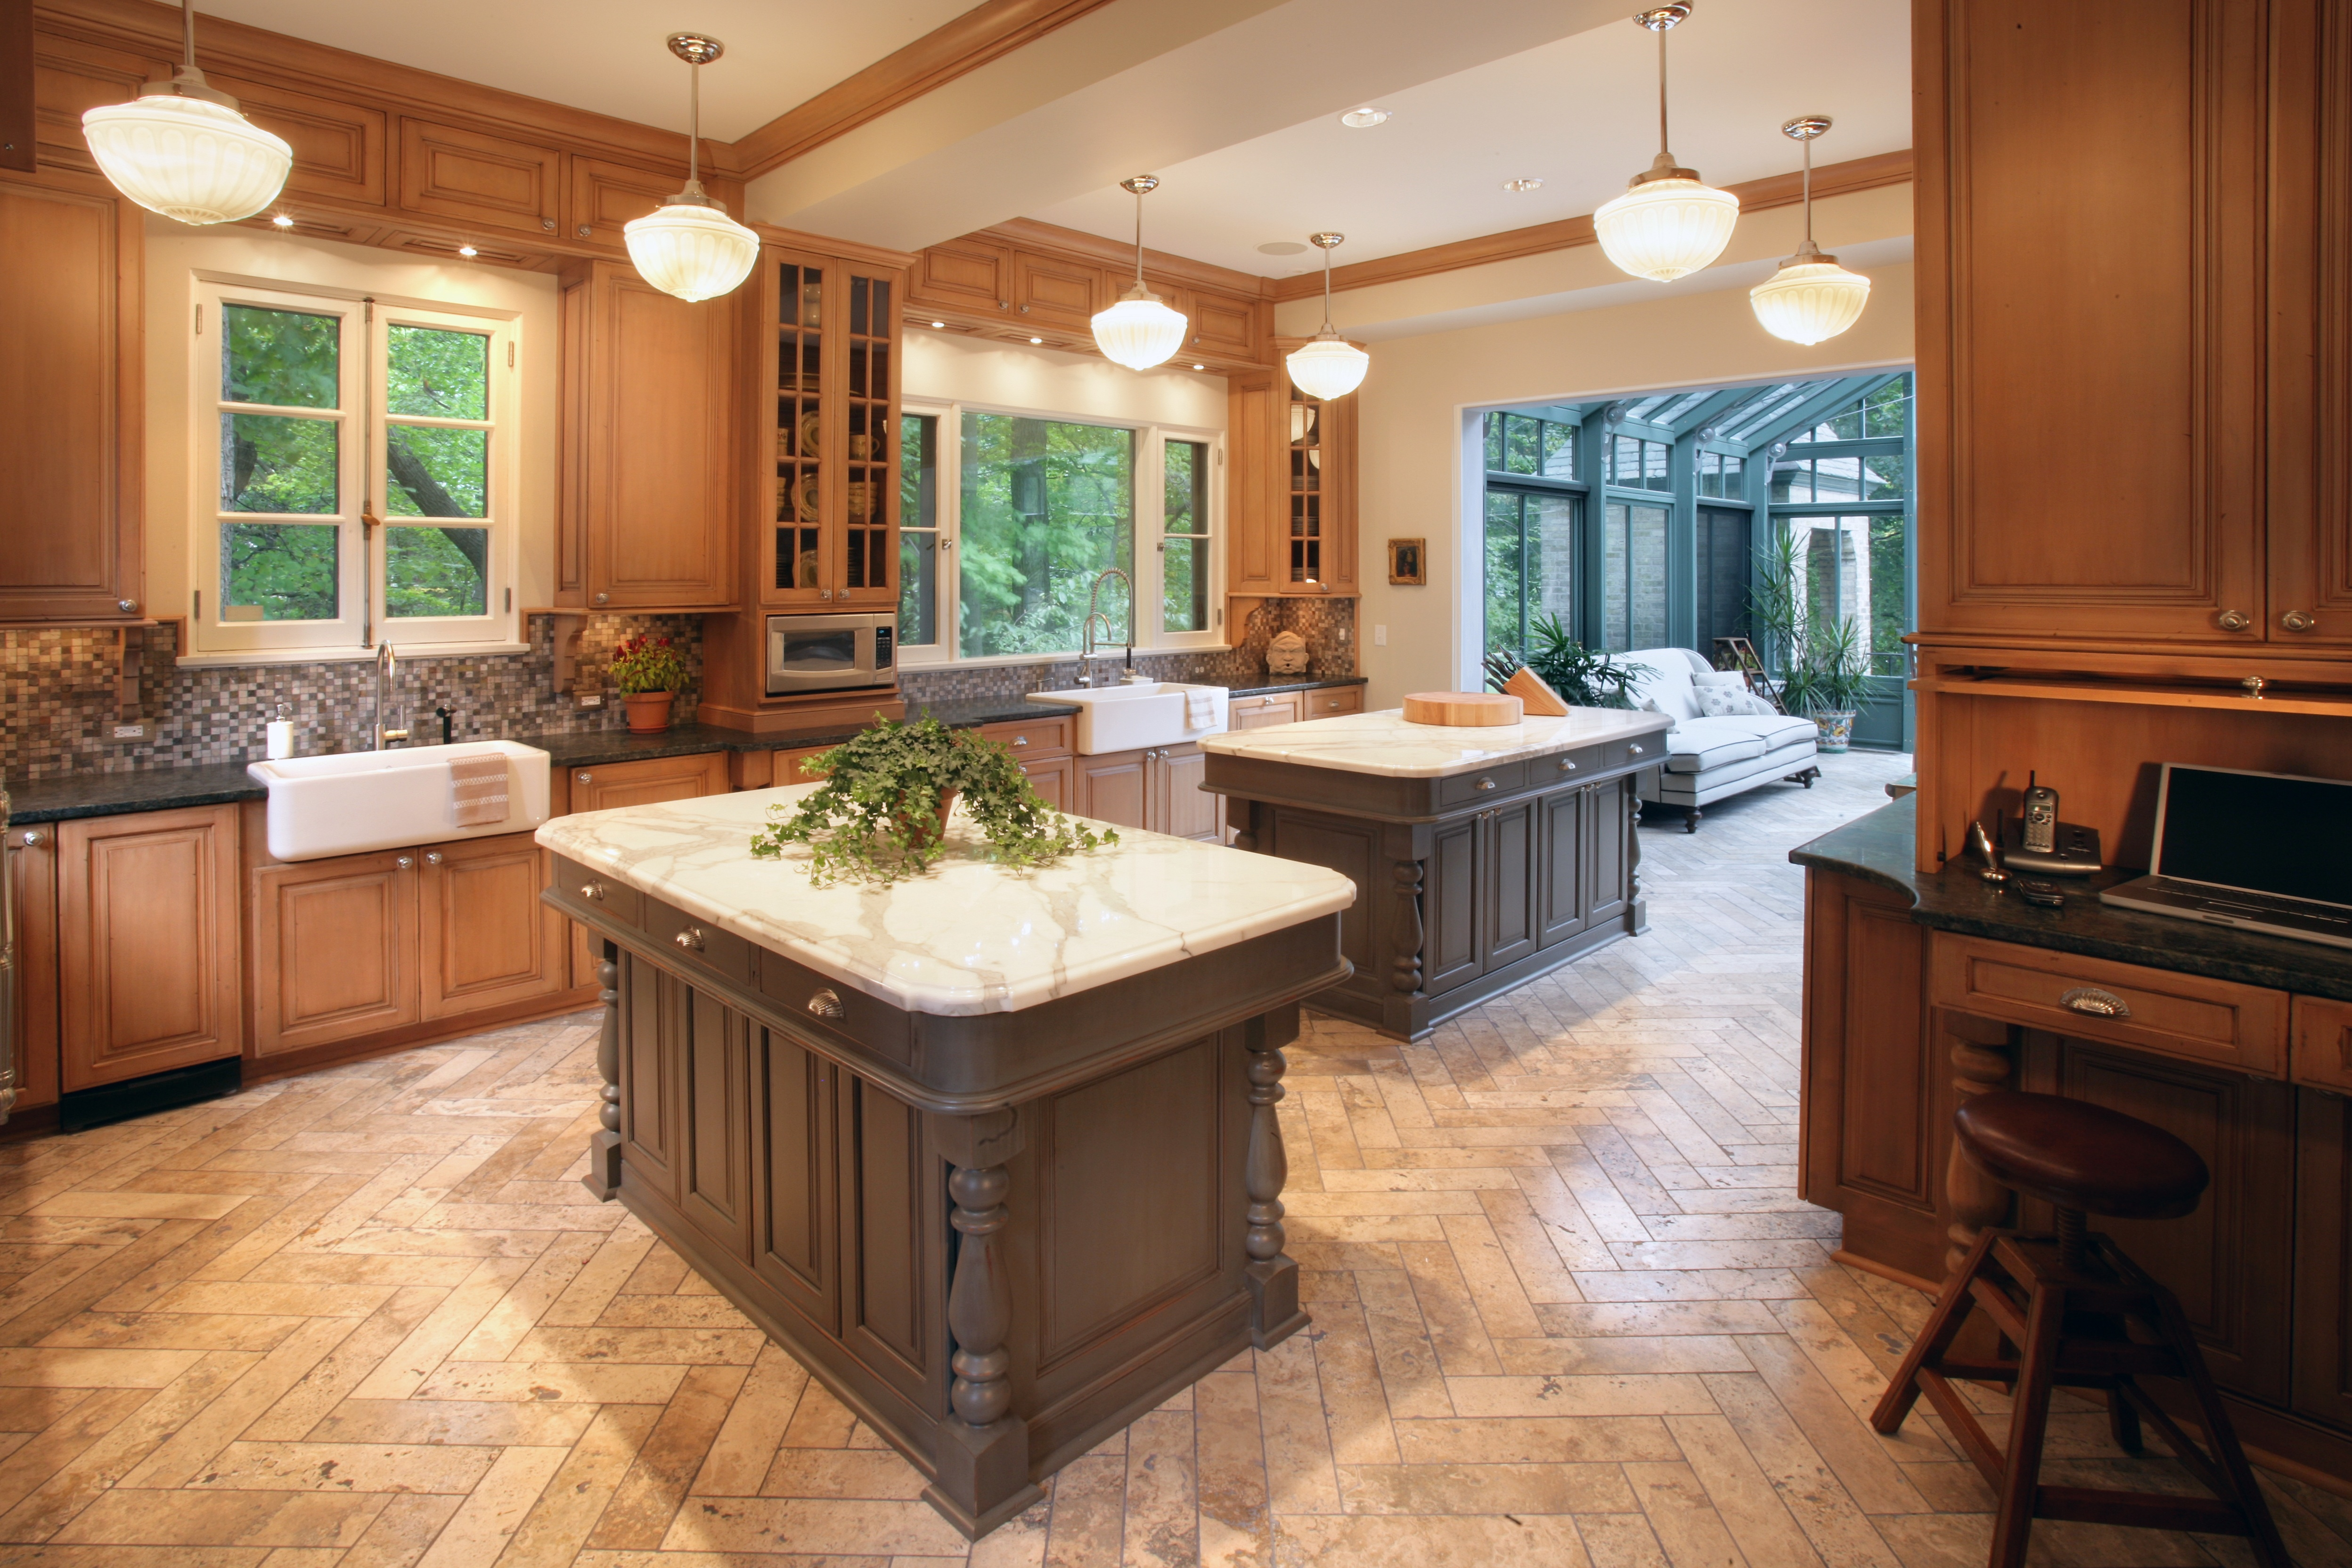 timothyj kitchen  and  bath, inc. image 3